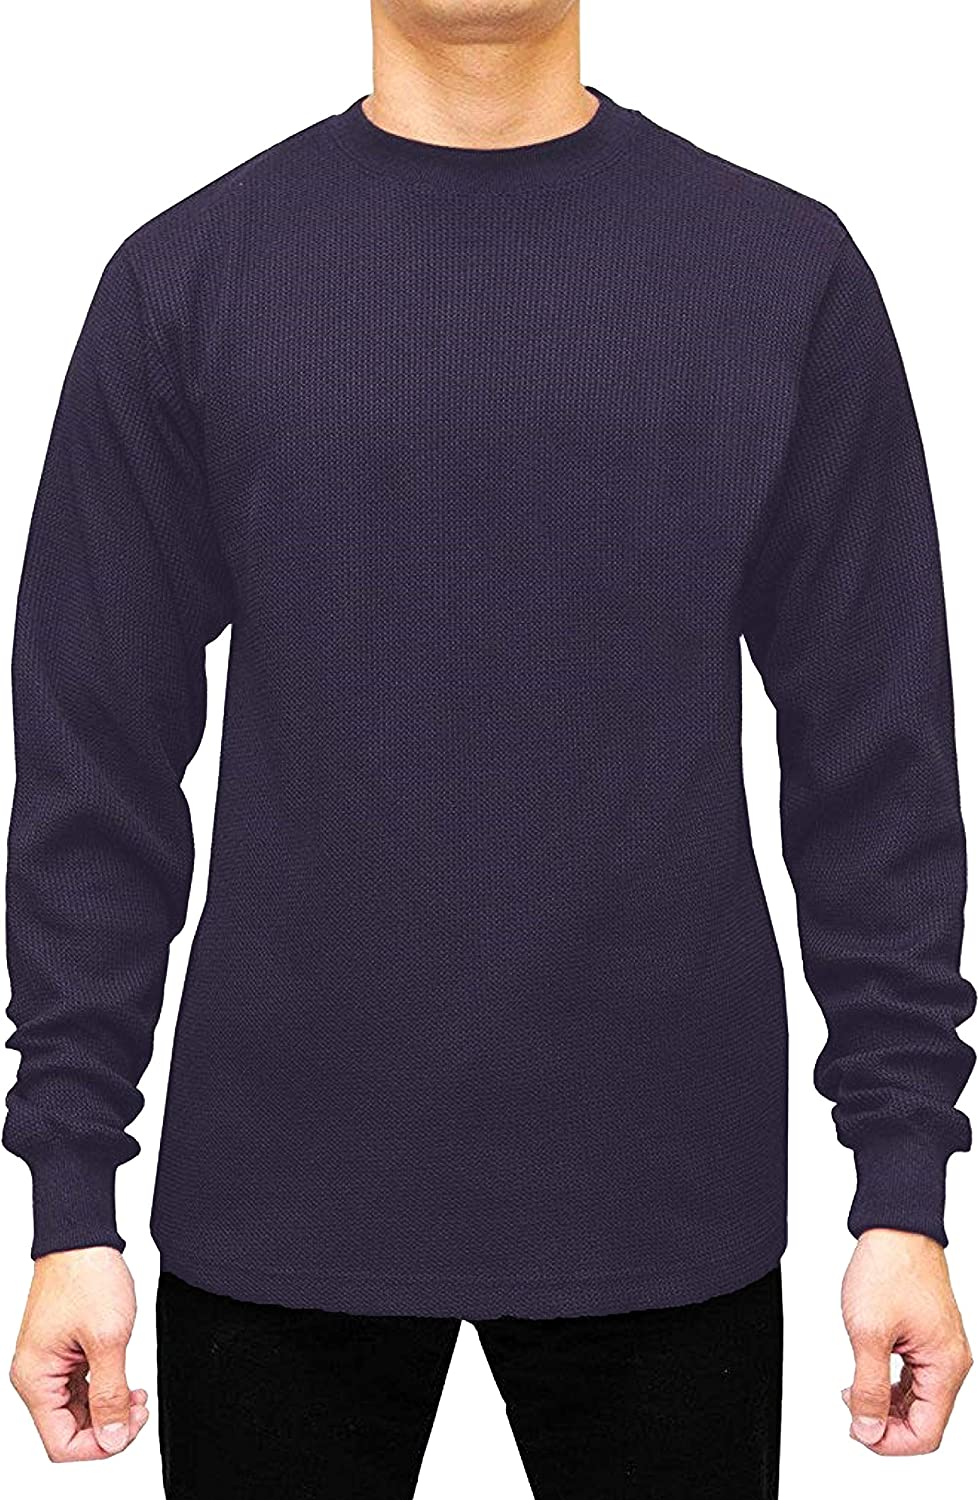 JMR Men's Heavy Weight Thermal Shirt Long Sleeve Top Underwear Colors & Sizes (Large, Navy)